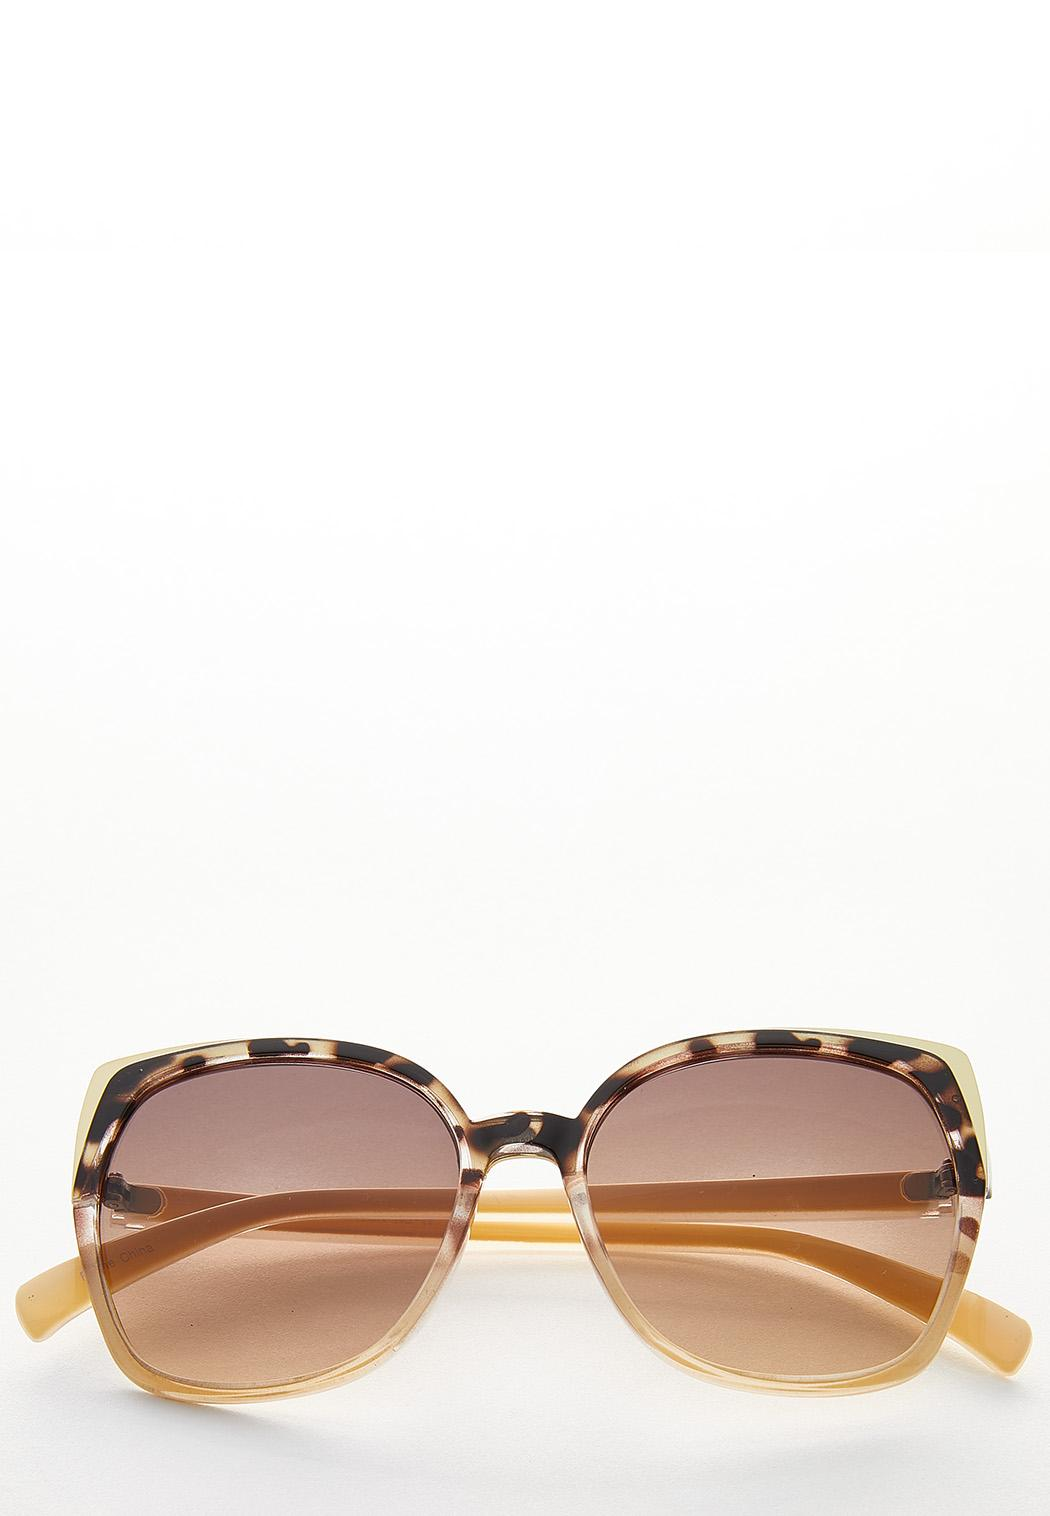 Tortoise Brow Square Sunglasses